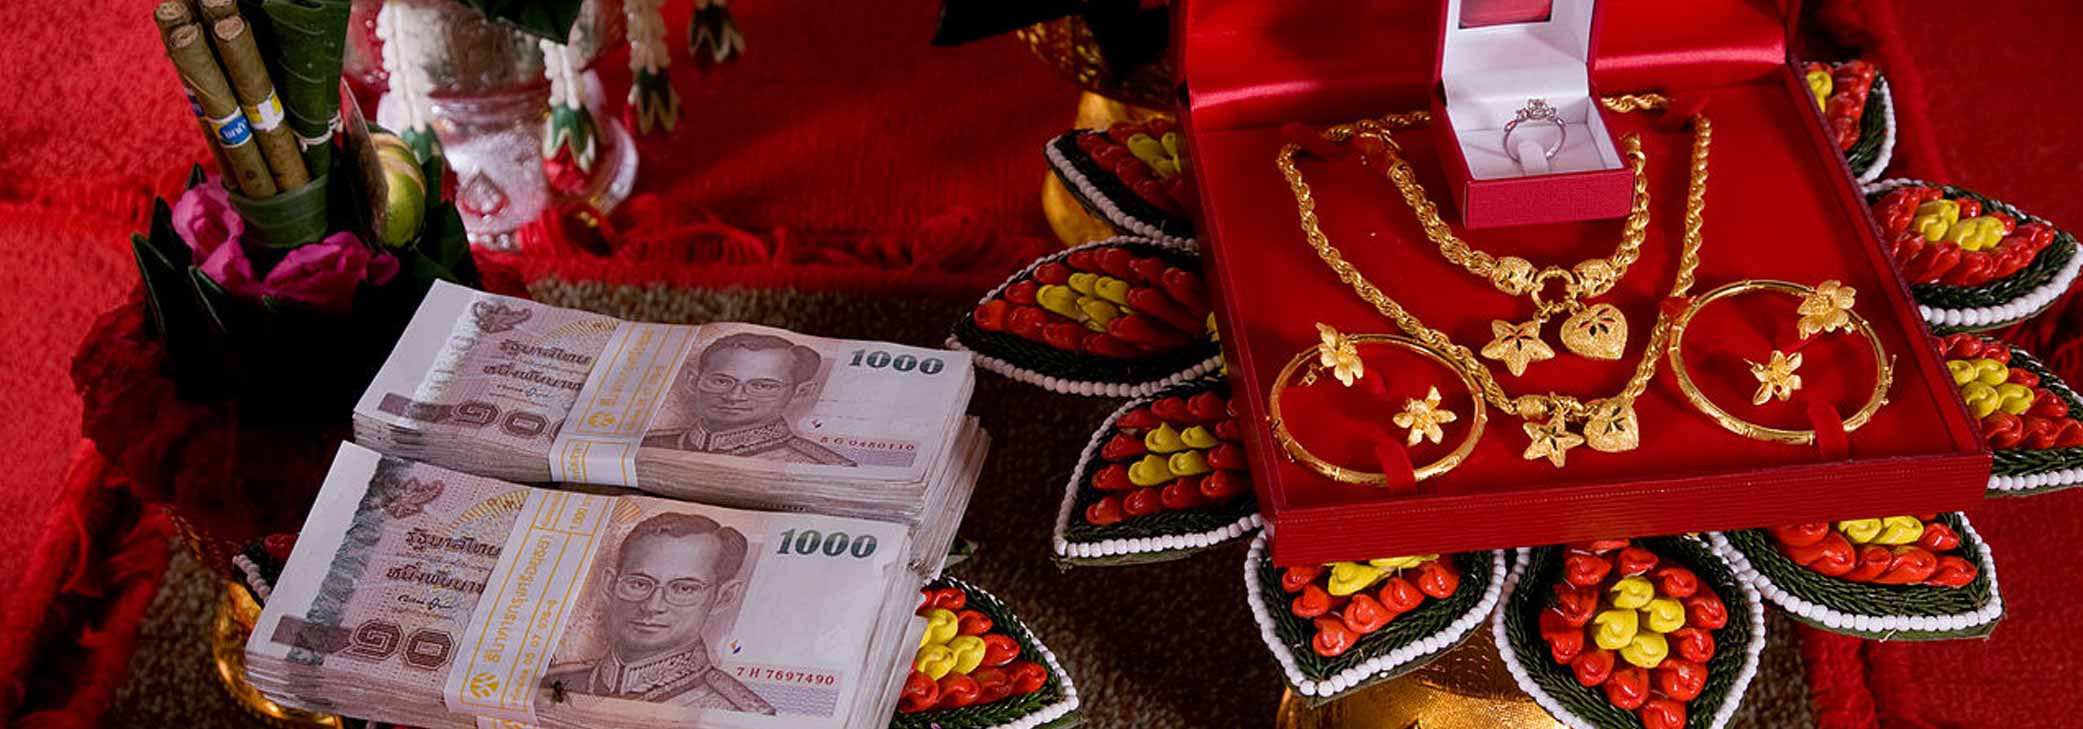 Thai Sinsot Or Dowry